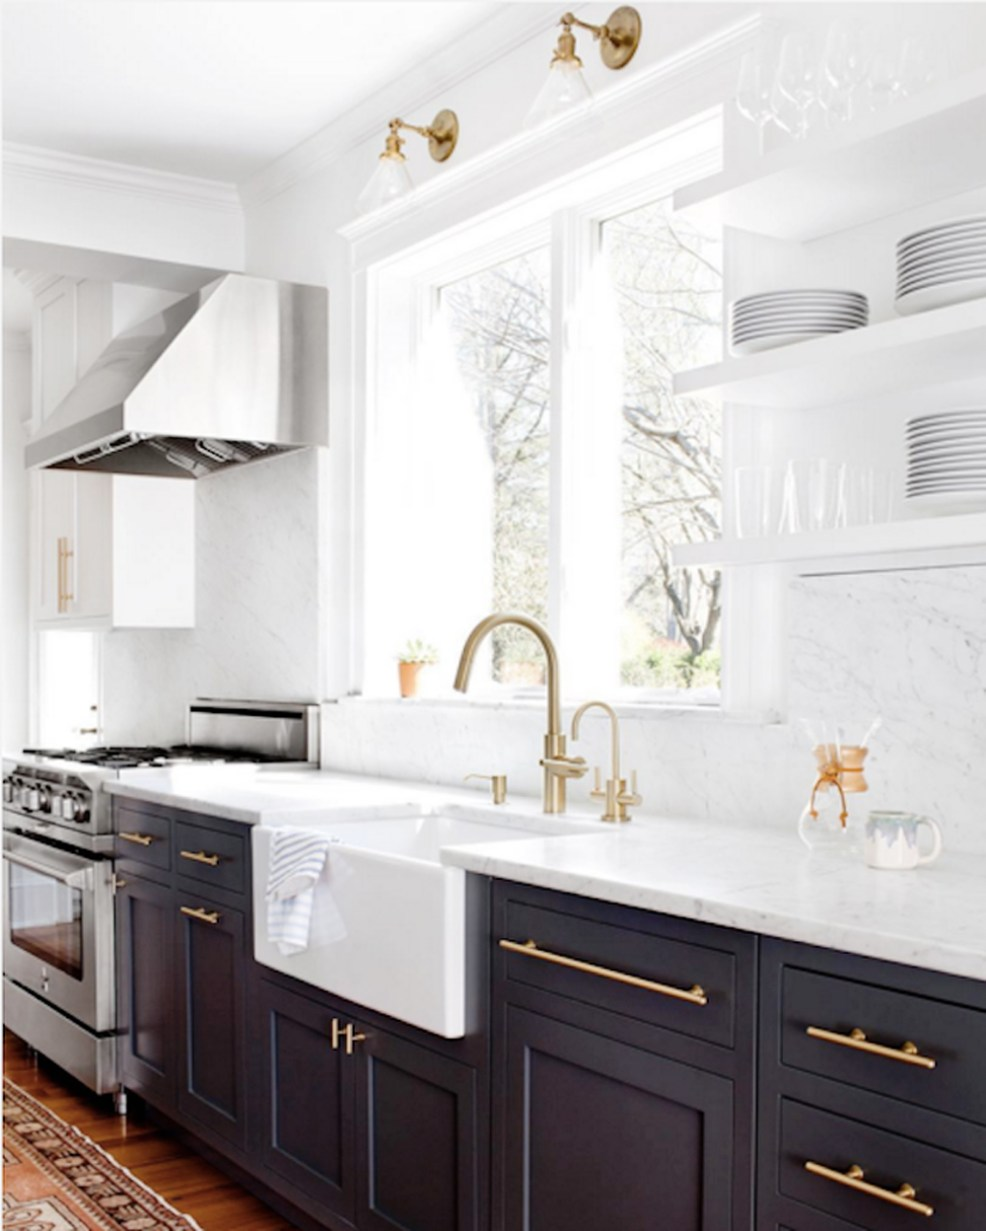 twotoned7 - THE TWO TONE KITCHEN by popular home design blogger E. INTERIORS